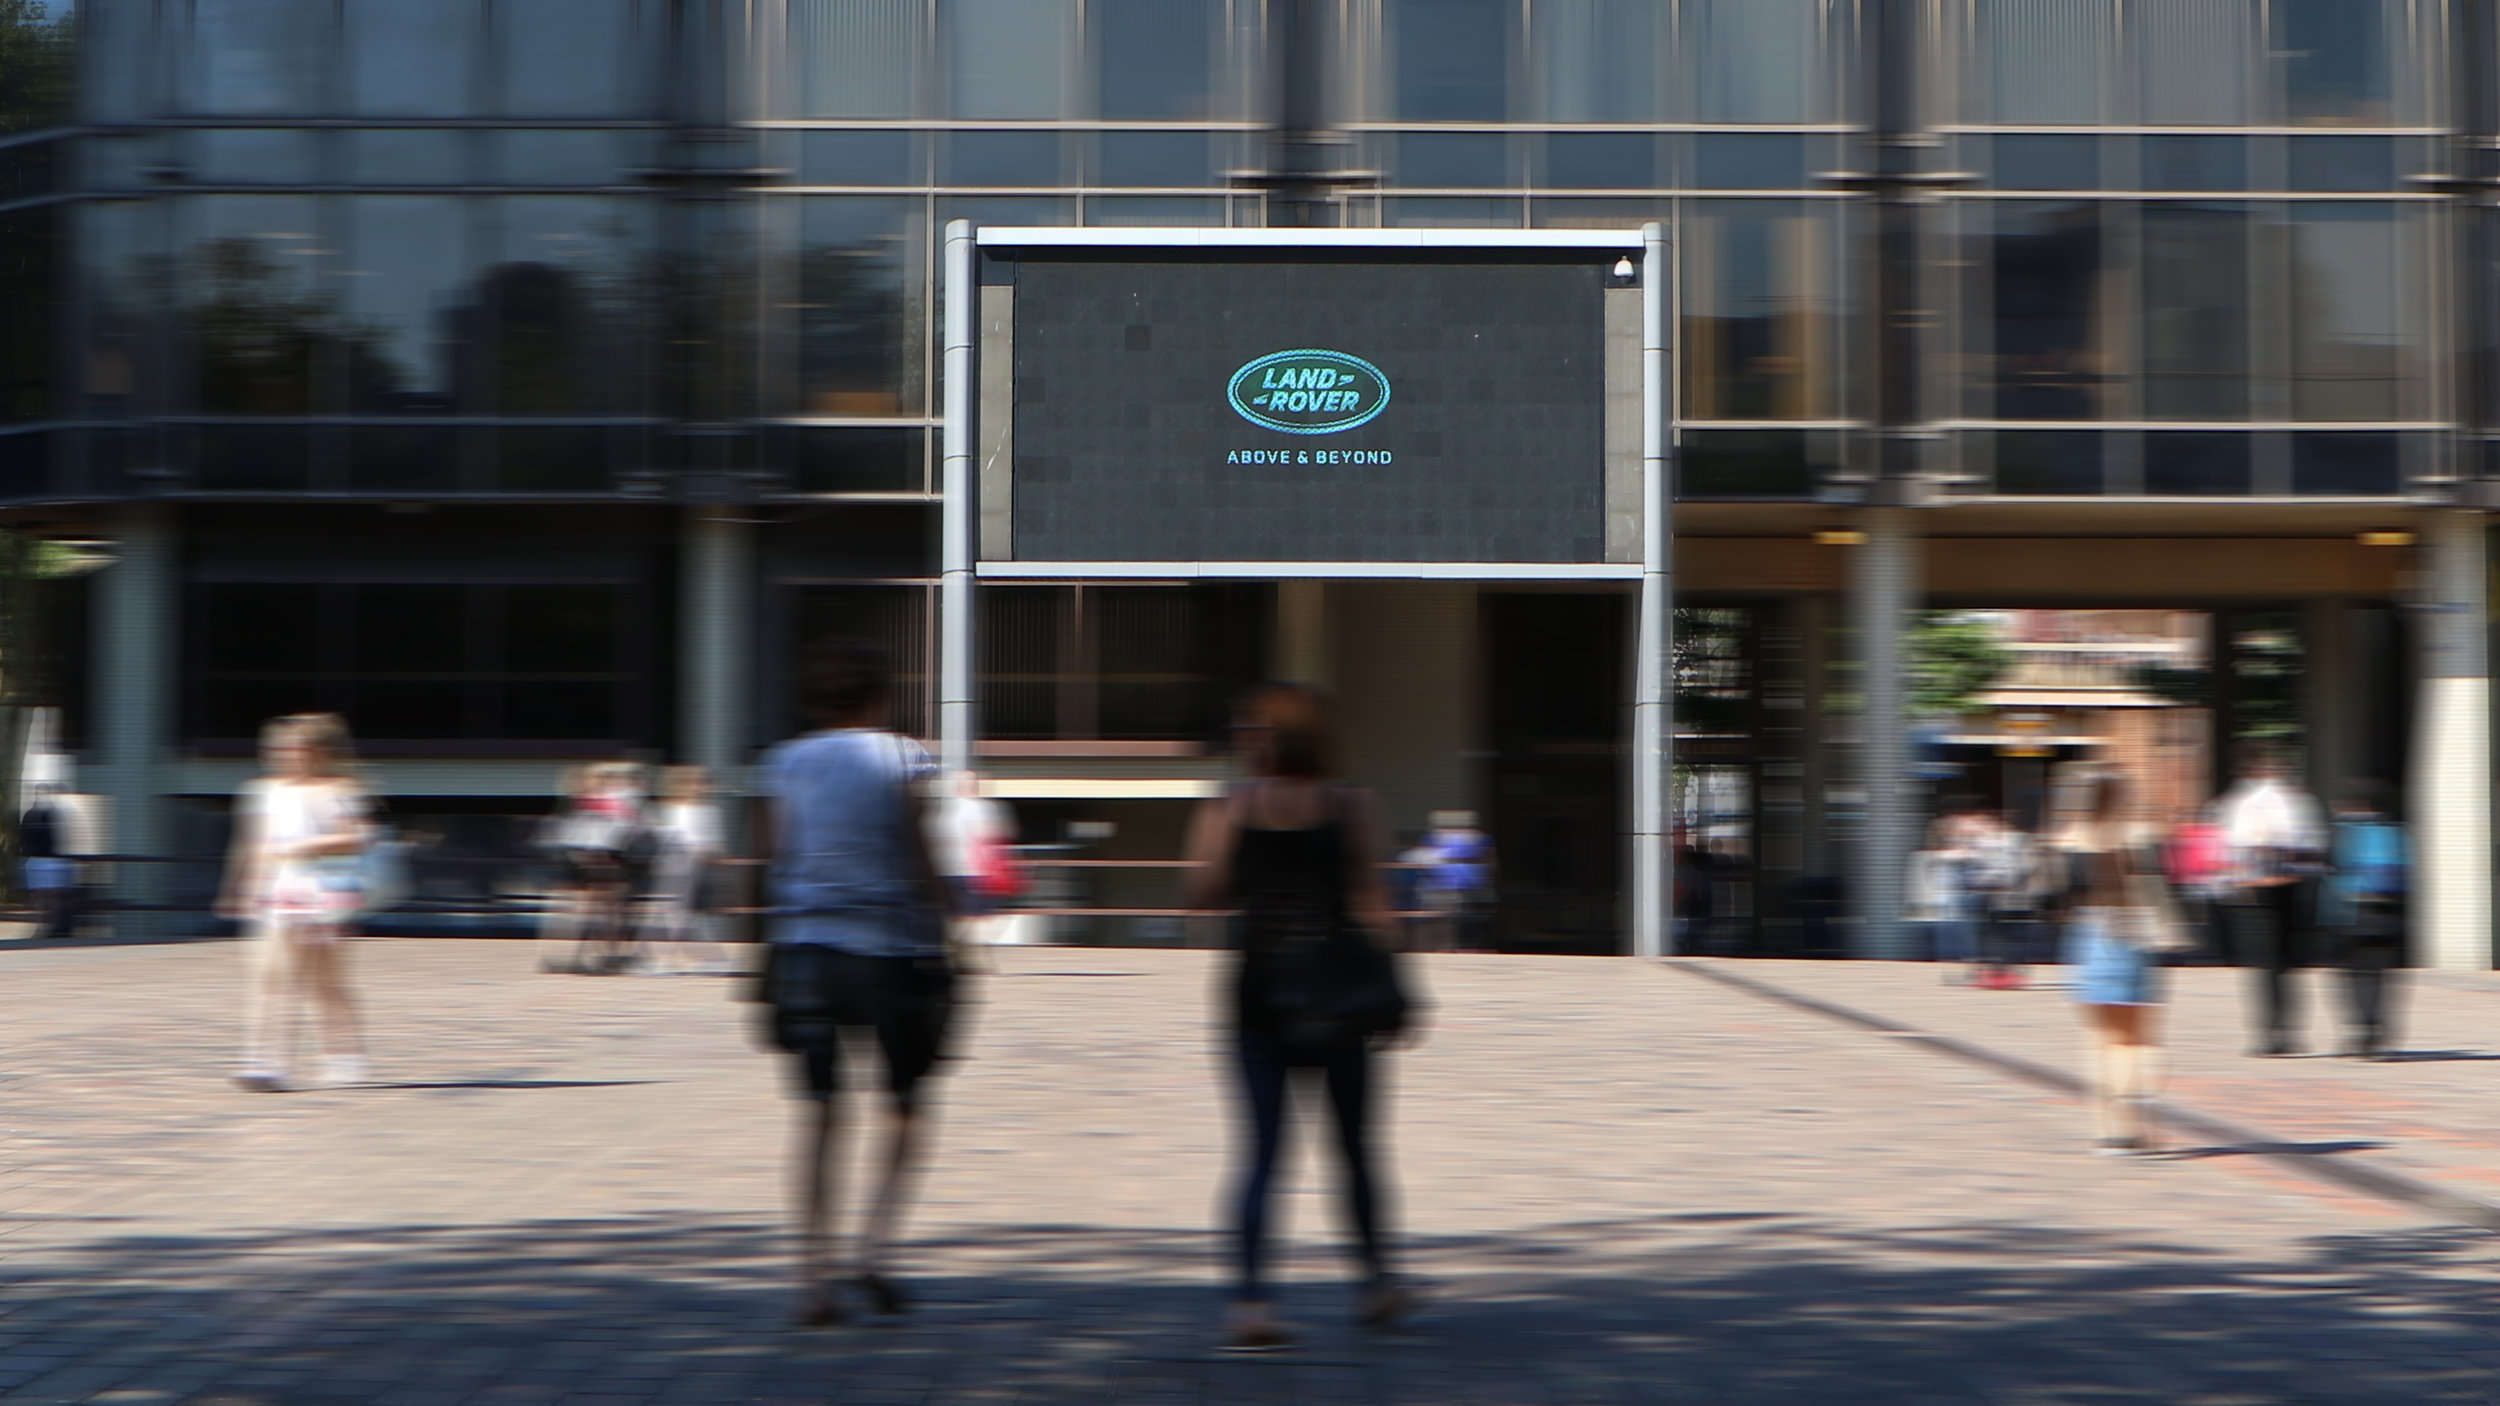 Big Screen Land Rover.jpg